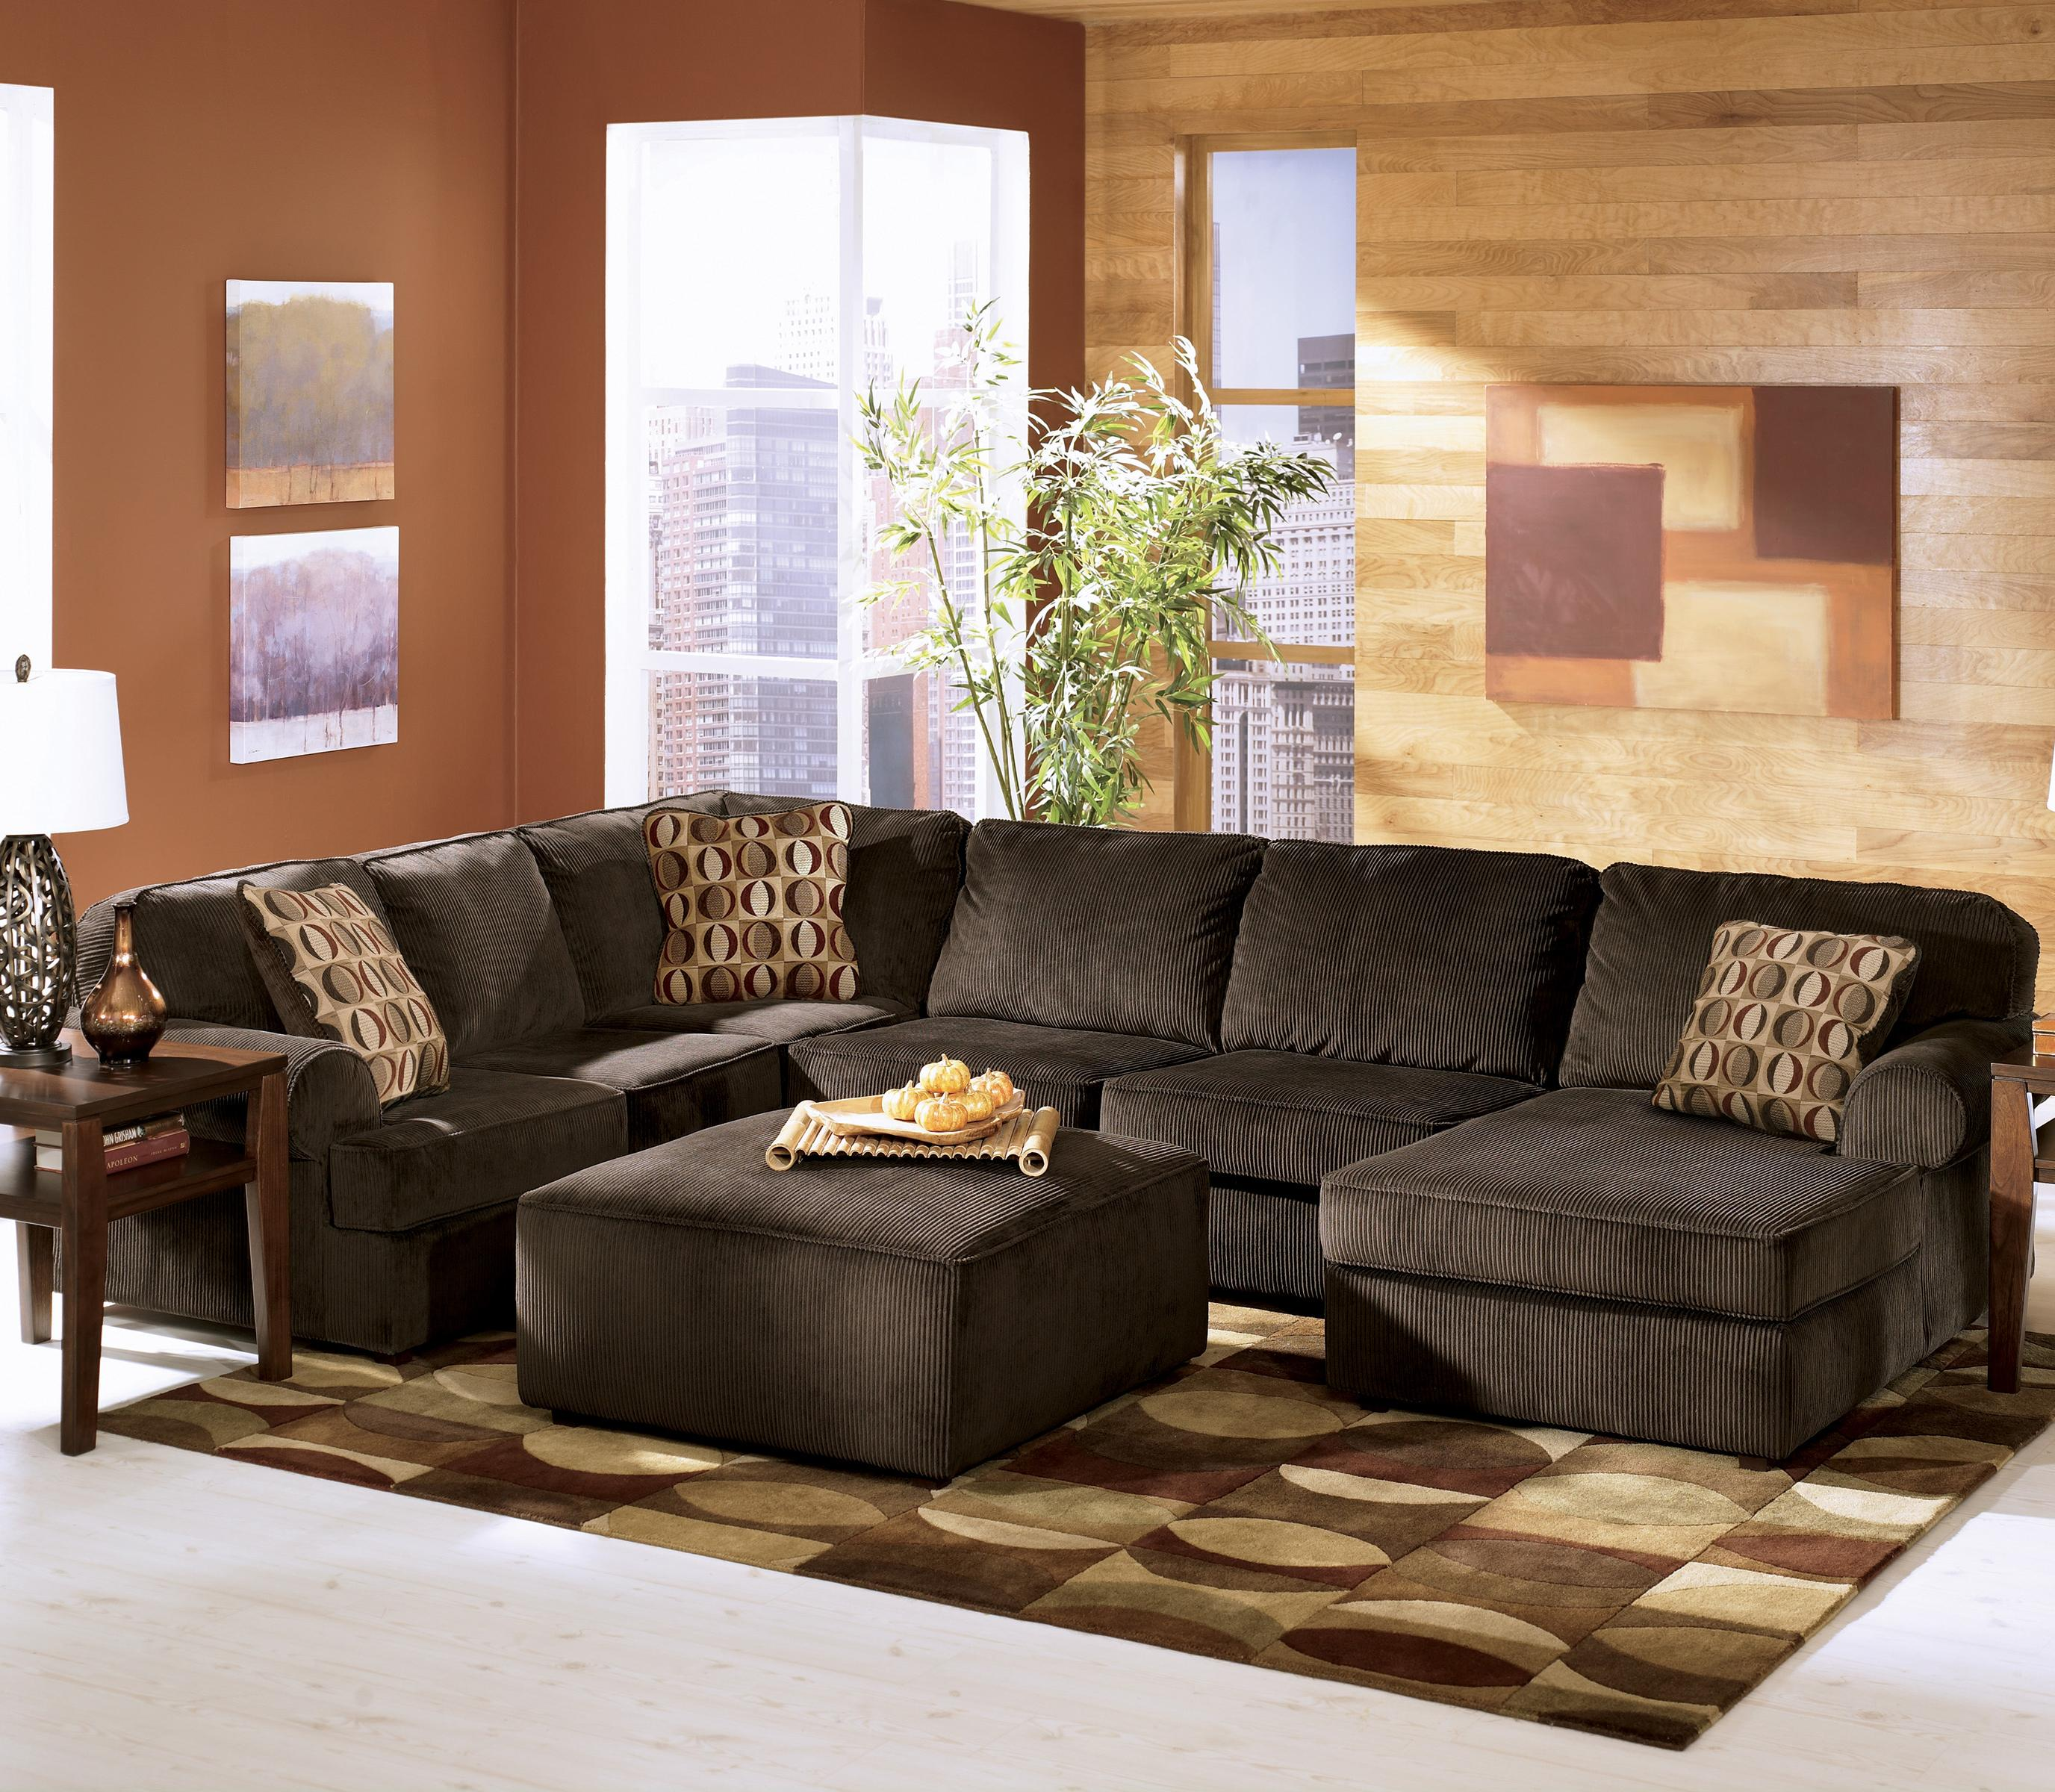 Ashley Furniture Vista - Chocolate Casual 3-Piece Sectional with Left Chaise - Wayside Furniture - Sofa Sectional : ashley furniture victory sectional - Sectionals, Sofas & Couches